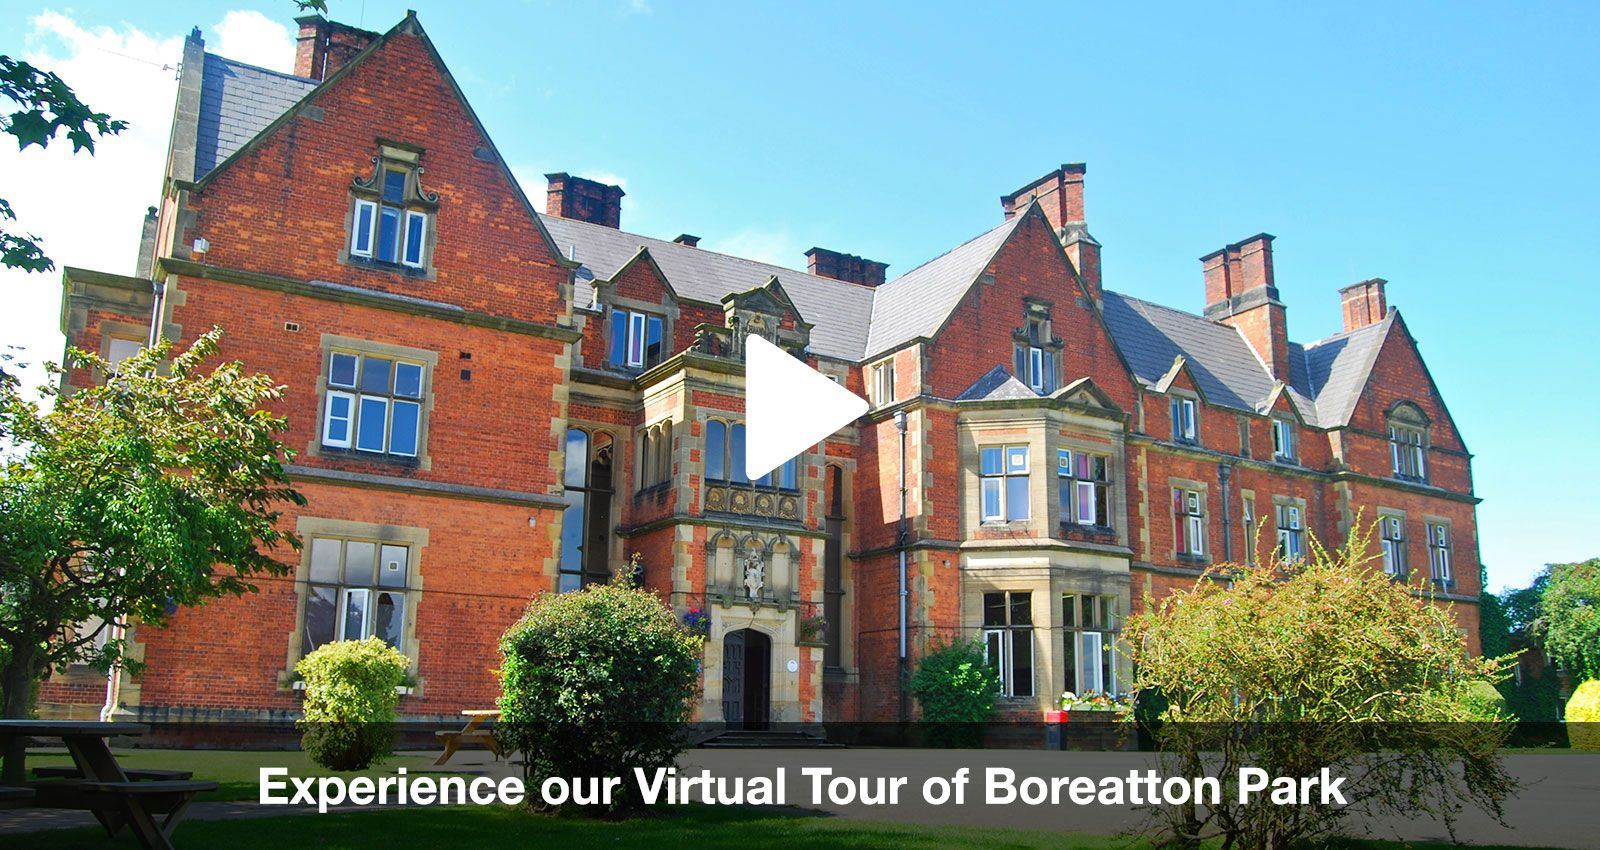 Boreatton Park for International Students